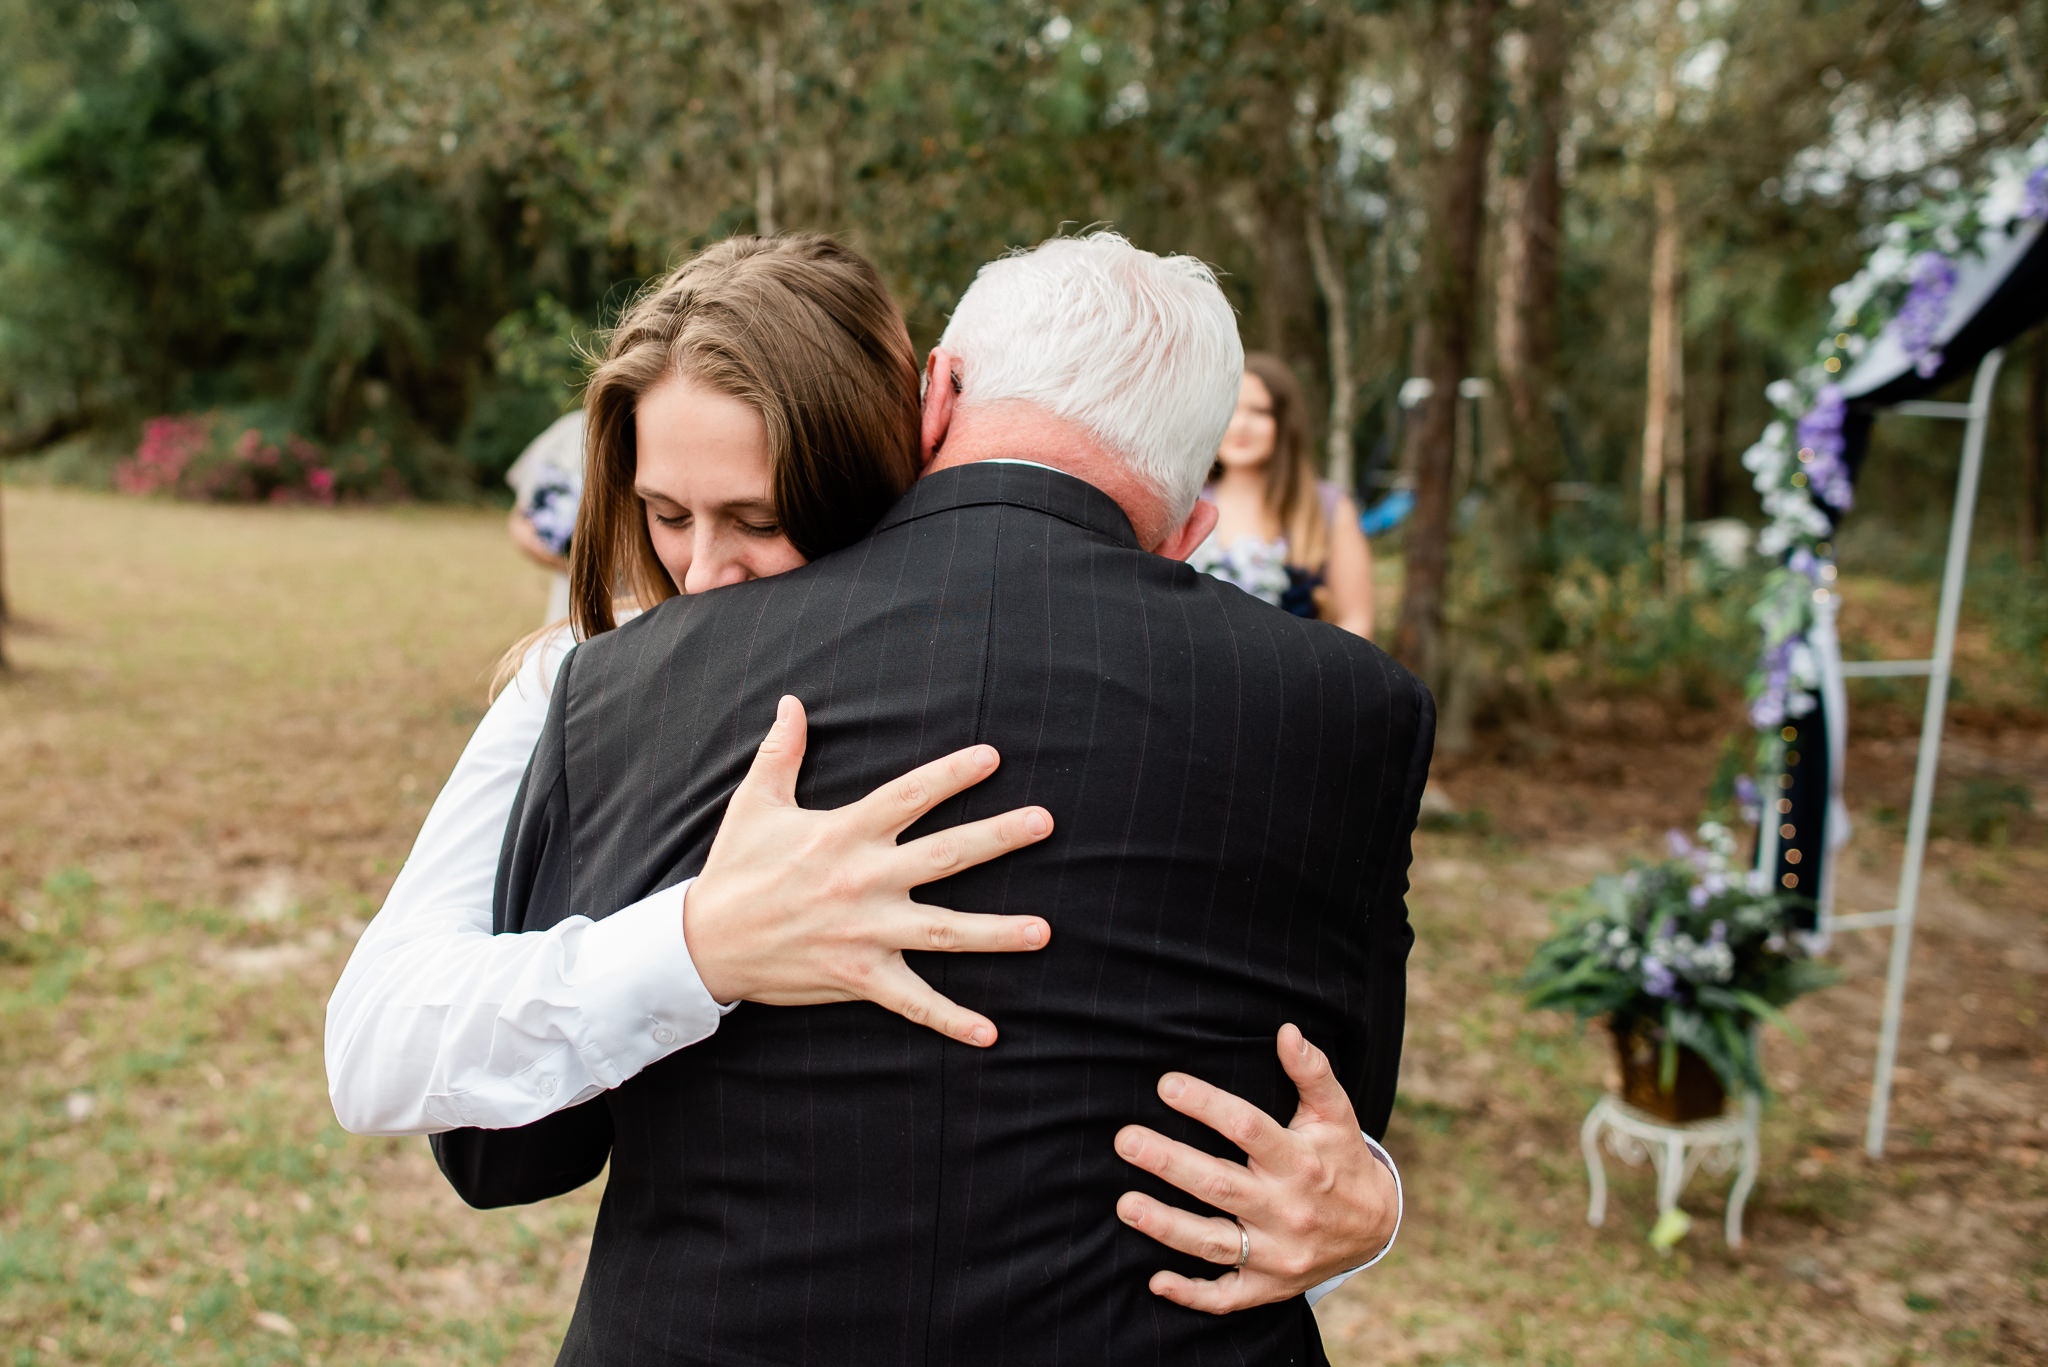 TAMPA_WEDDING_PHOTOGRAPHER_JAMZ_0535_16.jpg